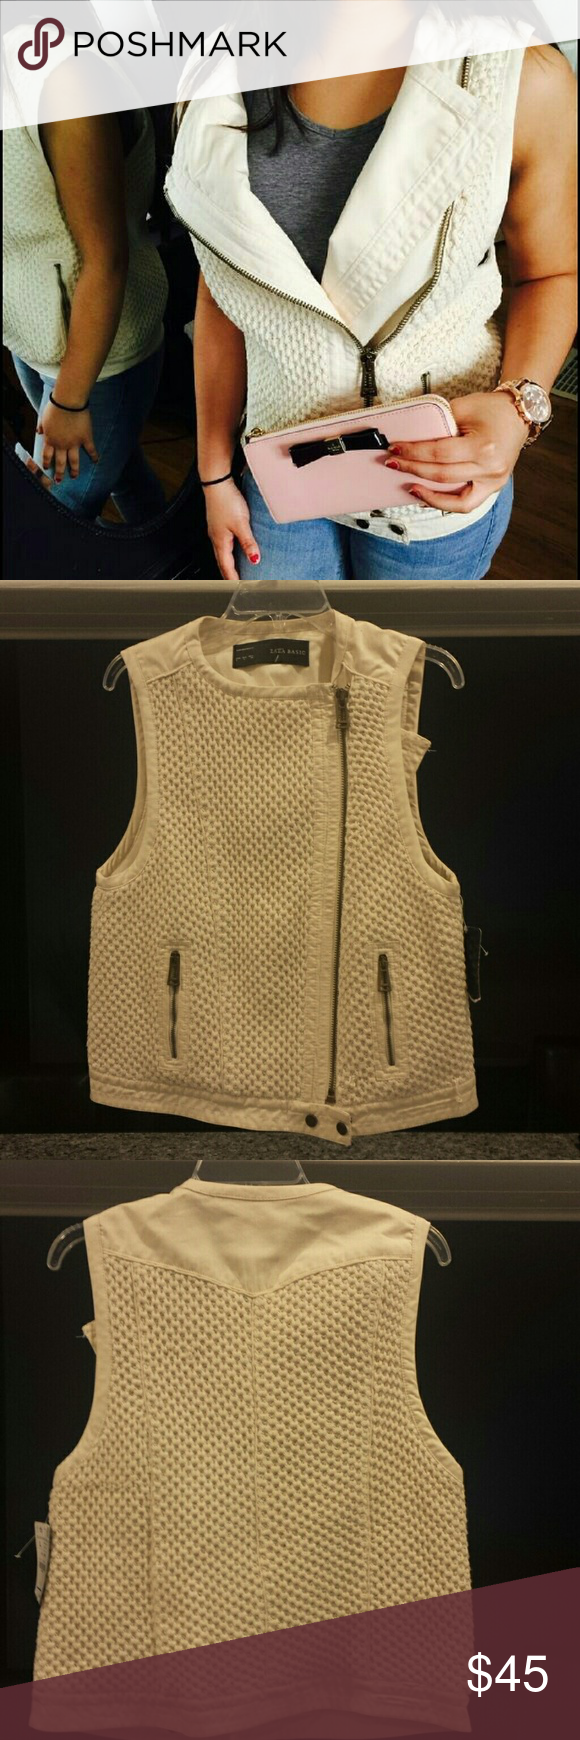 NWT Zara Basic Sweater Vest Beautiful cream colored zippered ...